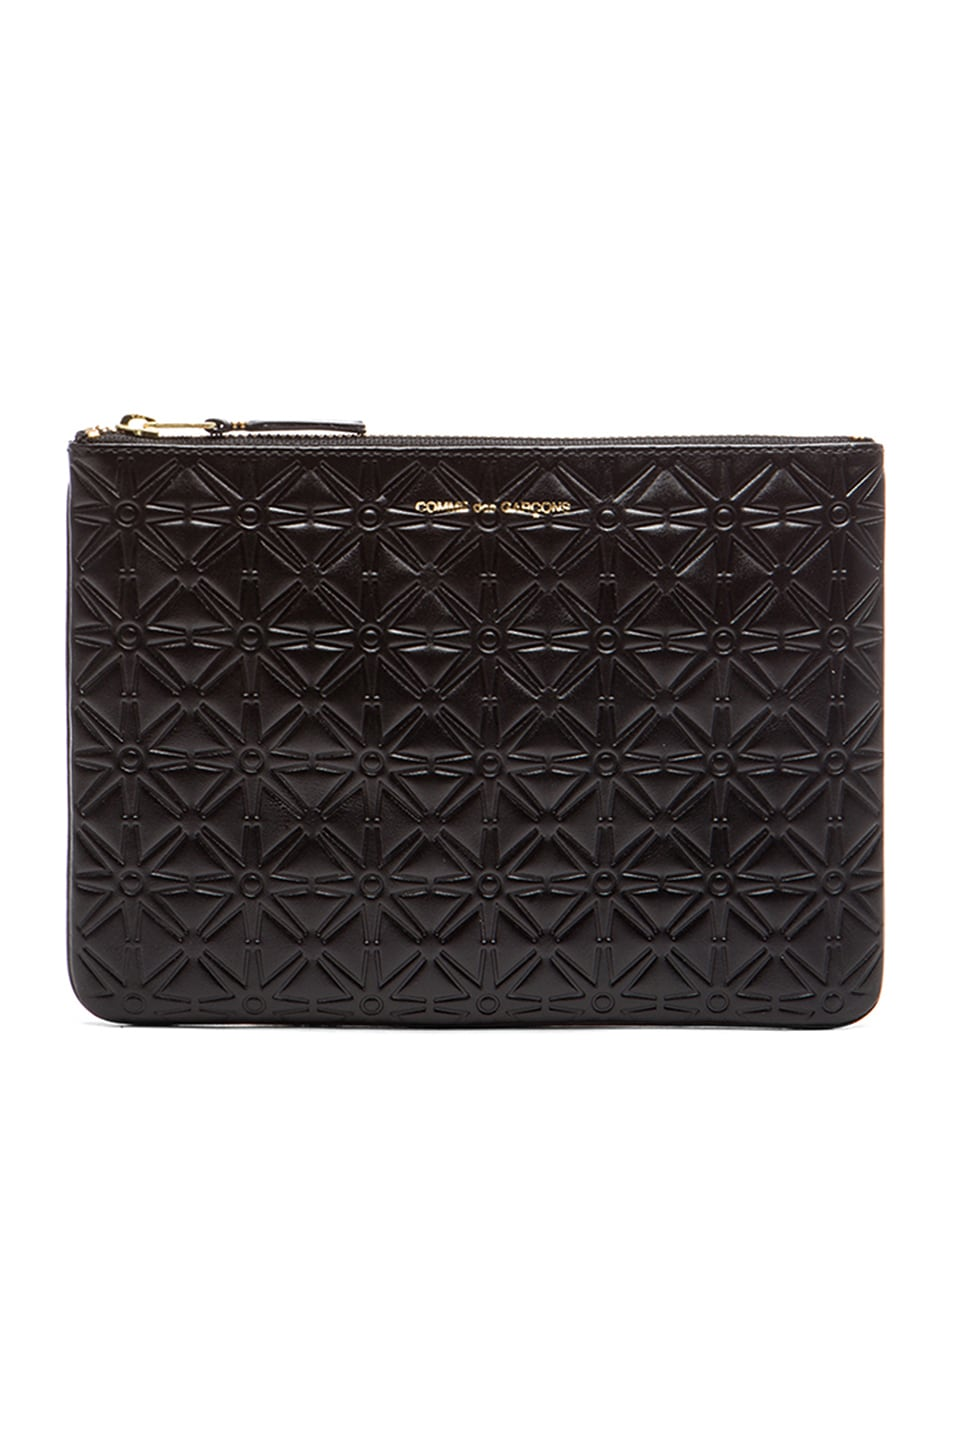 Star Embossed Pouch in Black Comme Des Garçons The Cheapest dqgS91y8iG